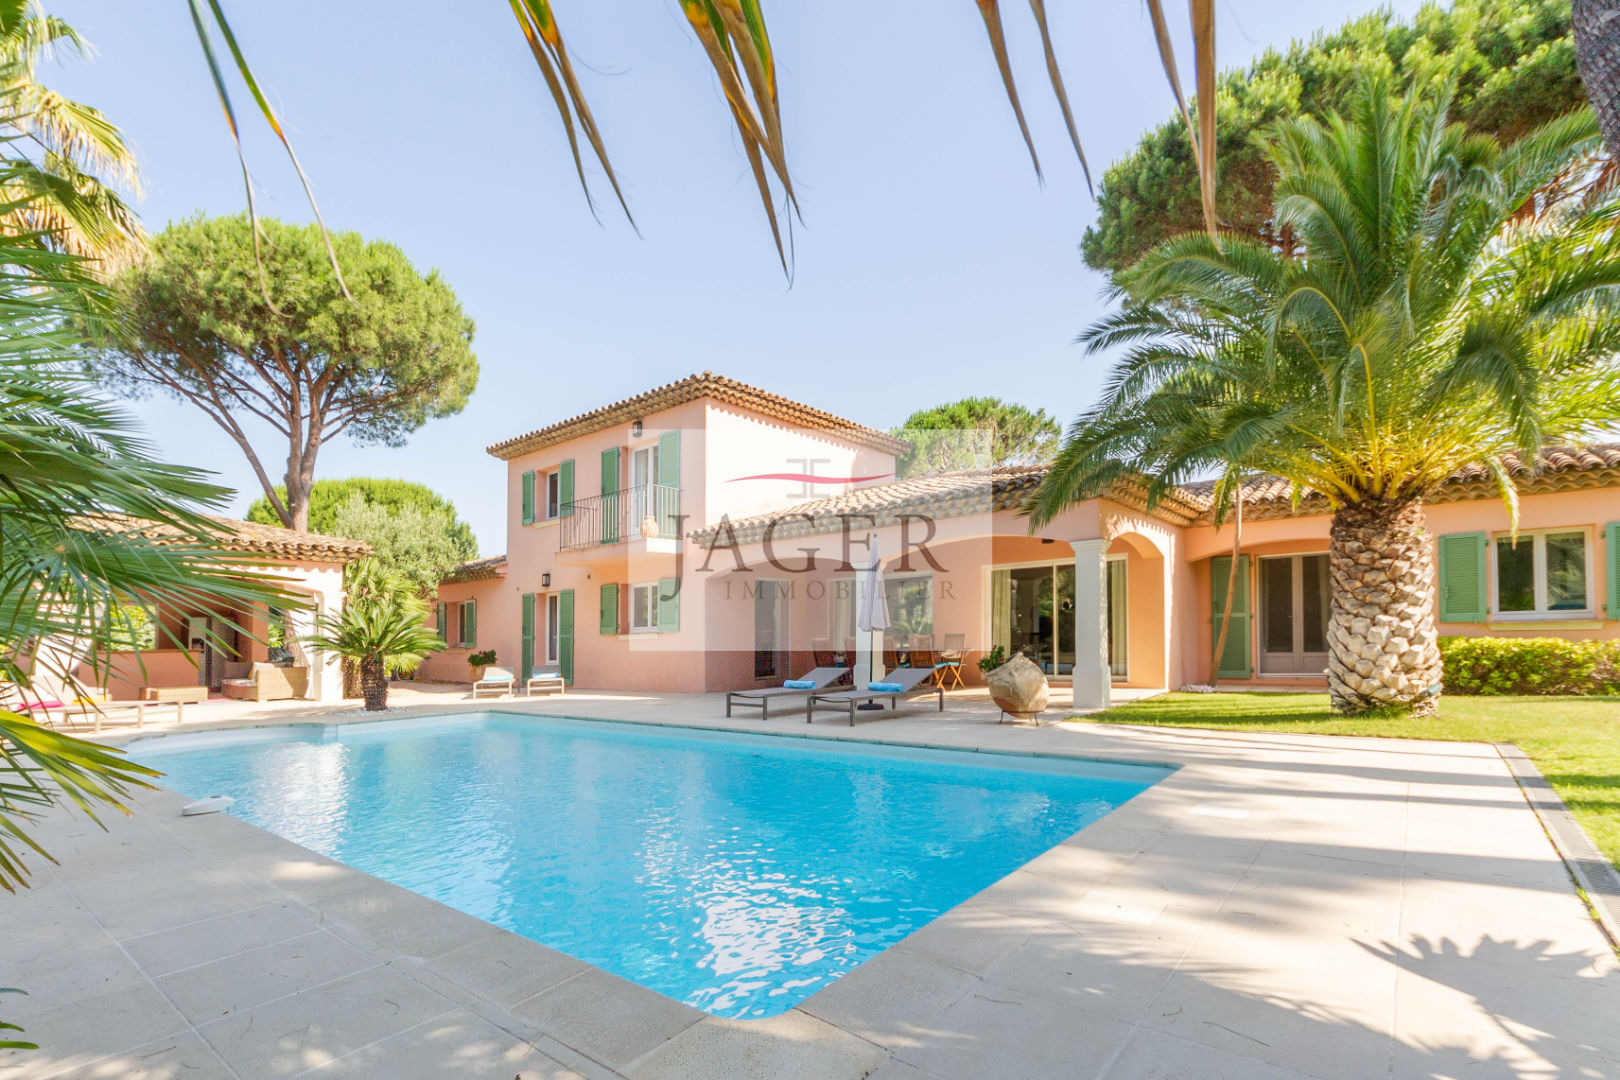 4 bedroom villa for sale Grimaud Gulf of st tropez 160 m²